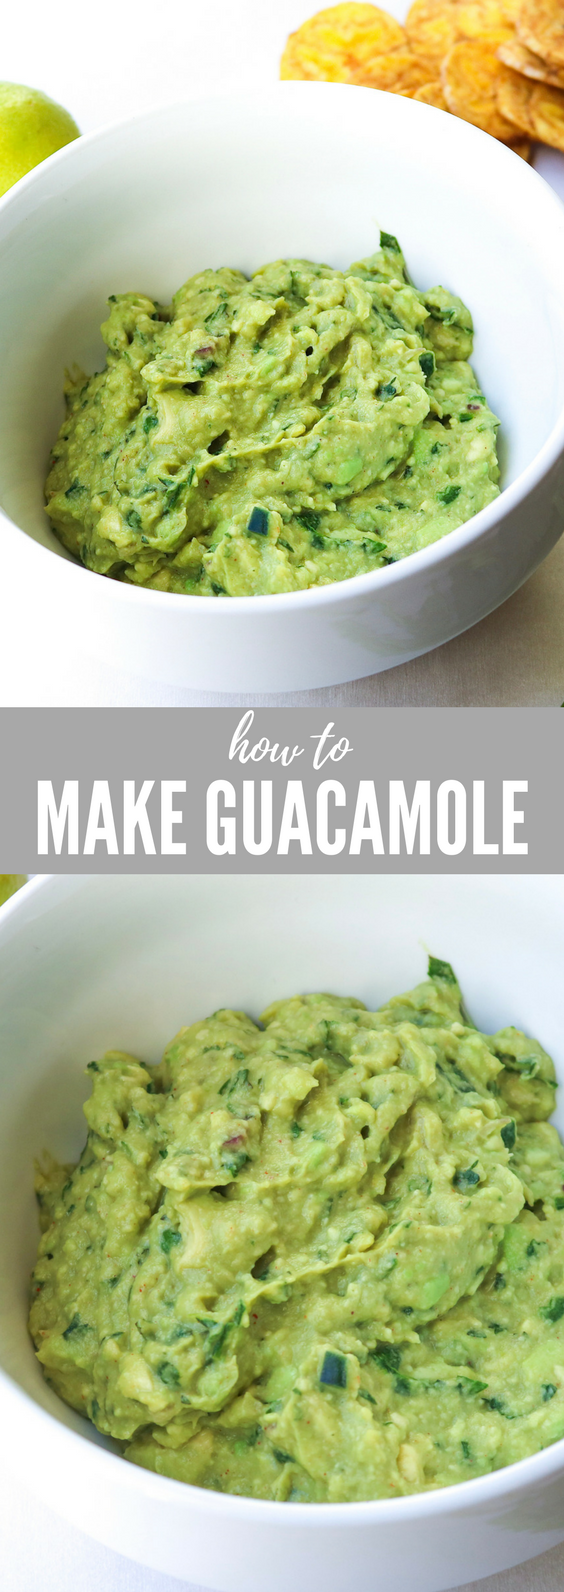 Easy Guacamole | All the Healthy Things